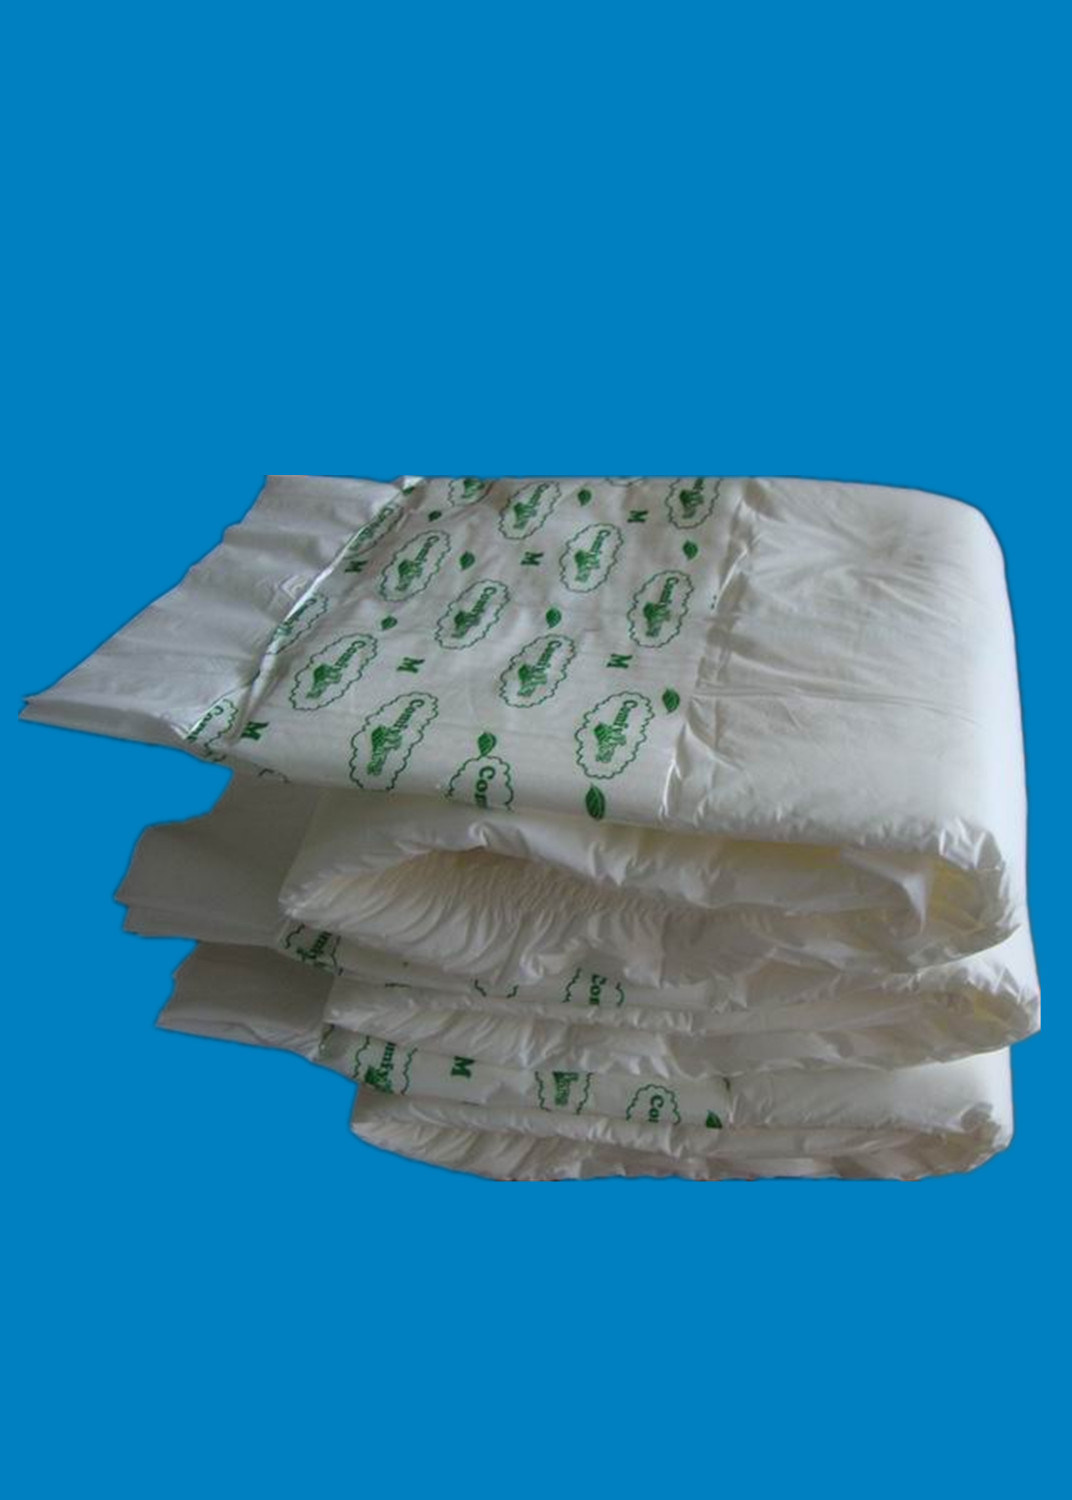 Disposable Adult Nappies for Incontinence People